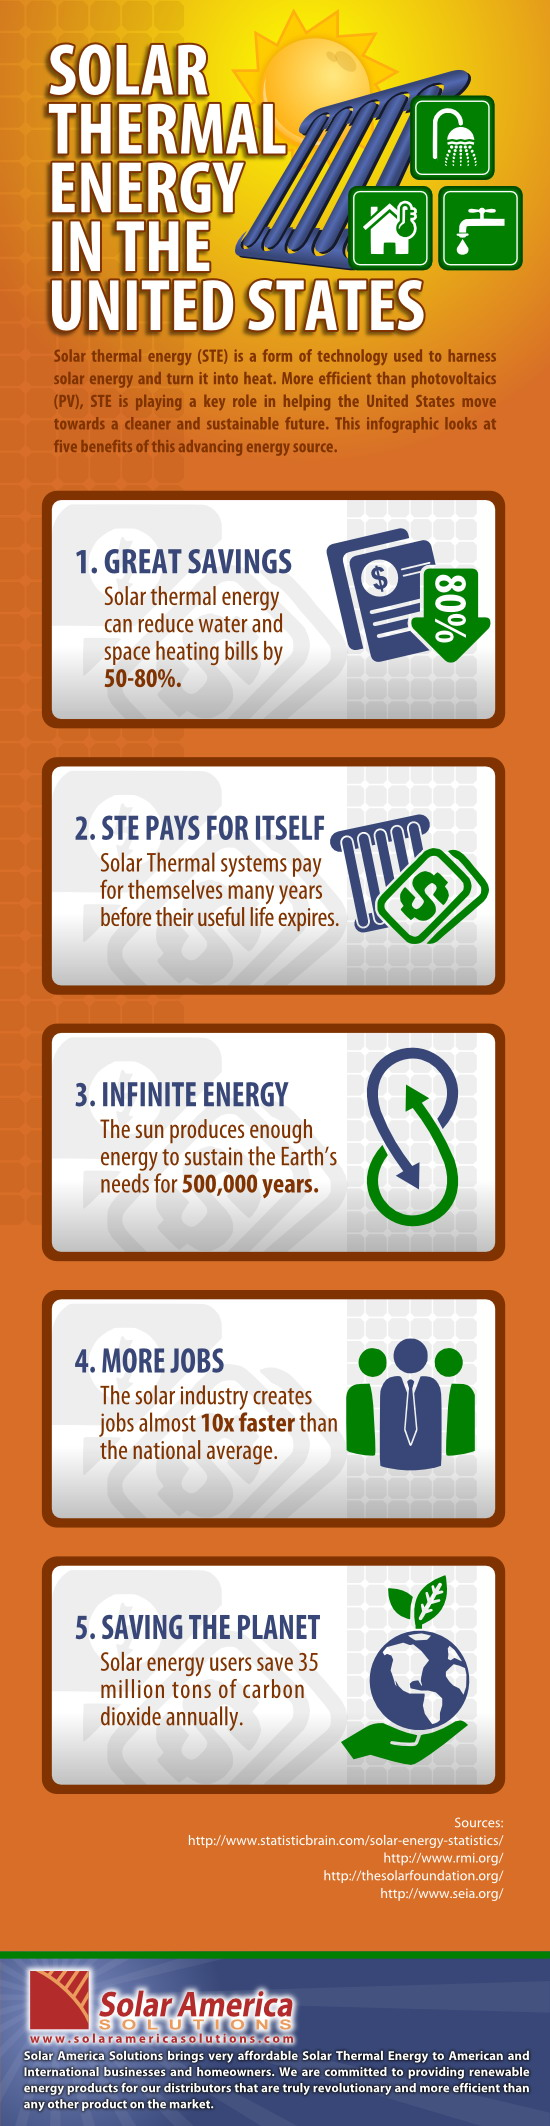 Solar Thermal Energy in the United States